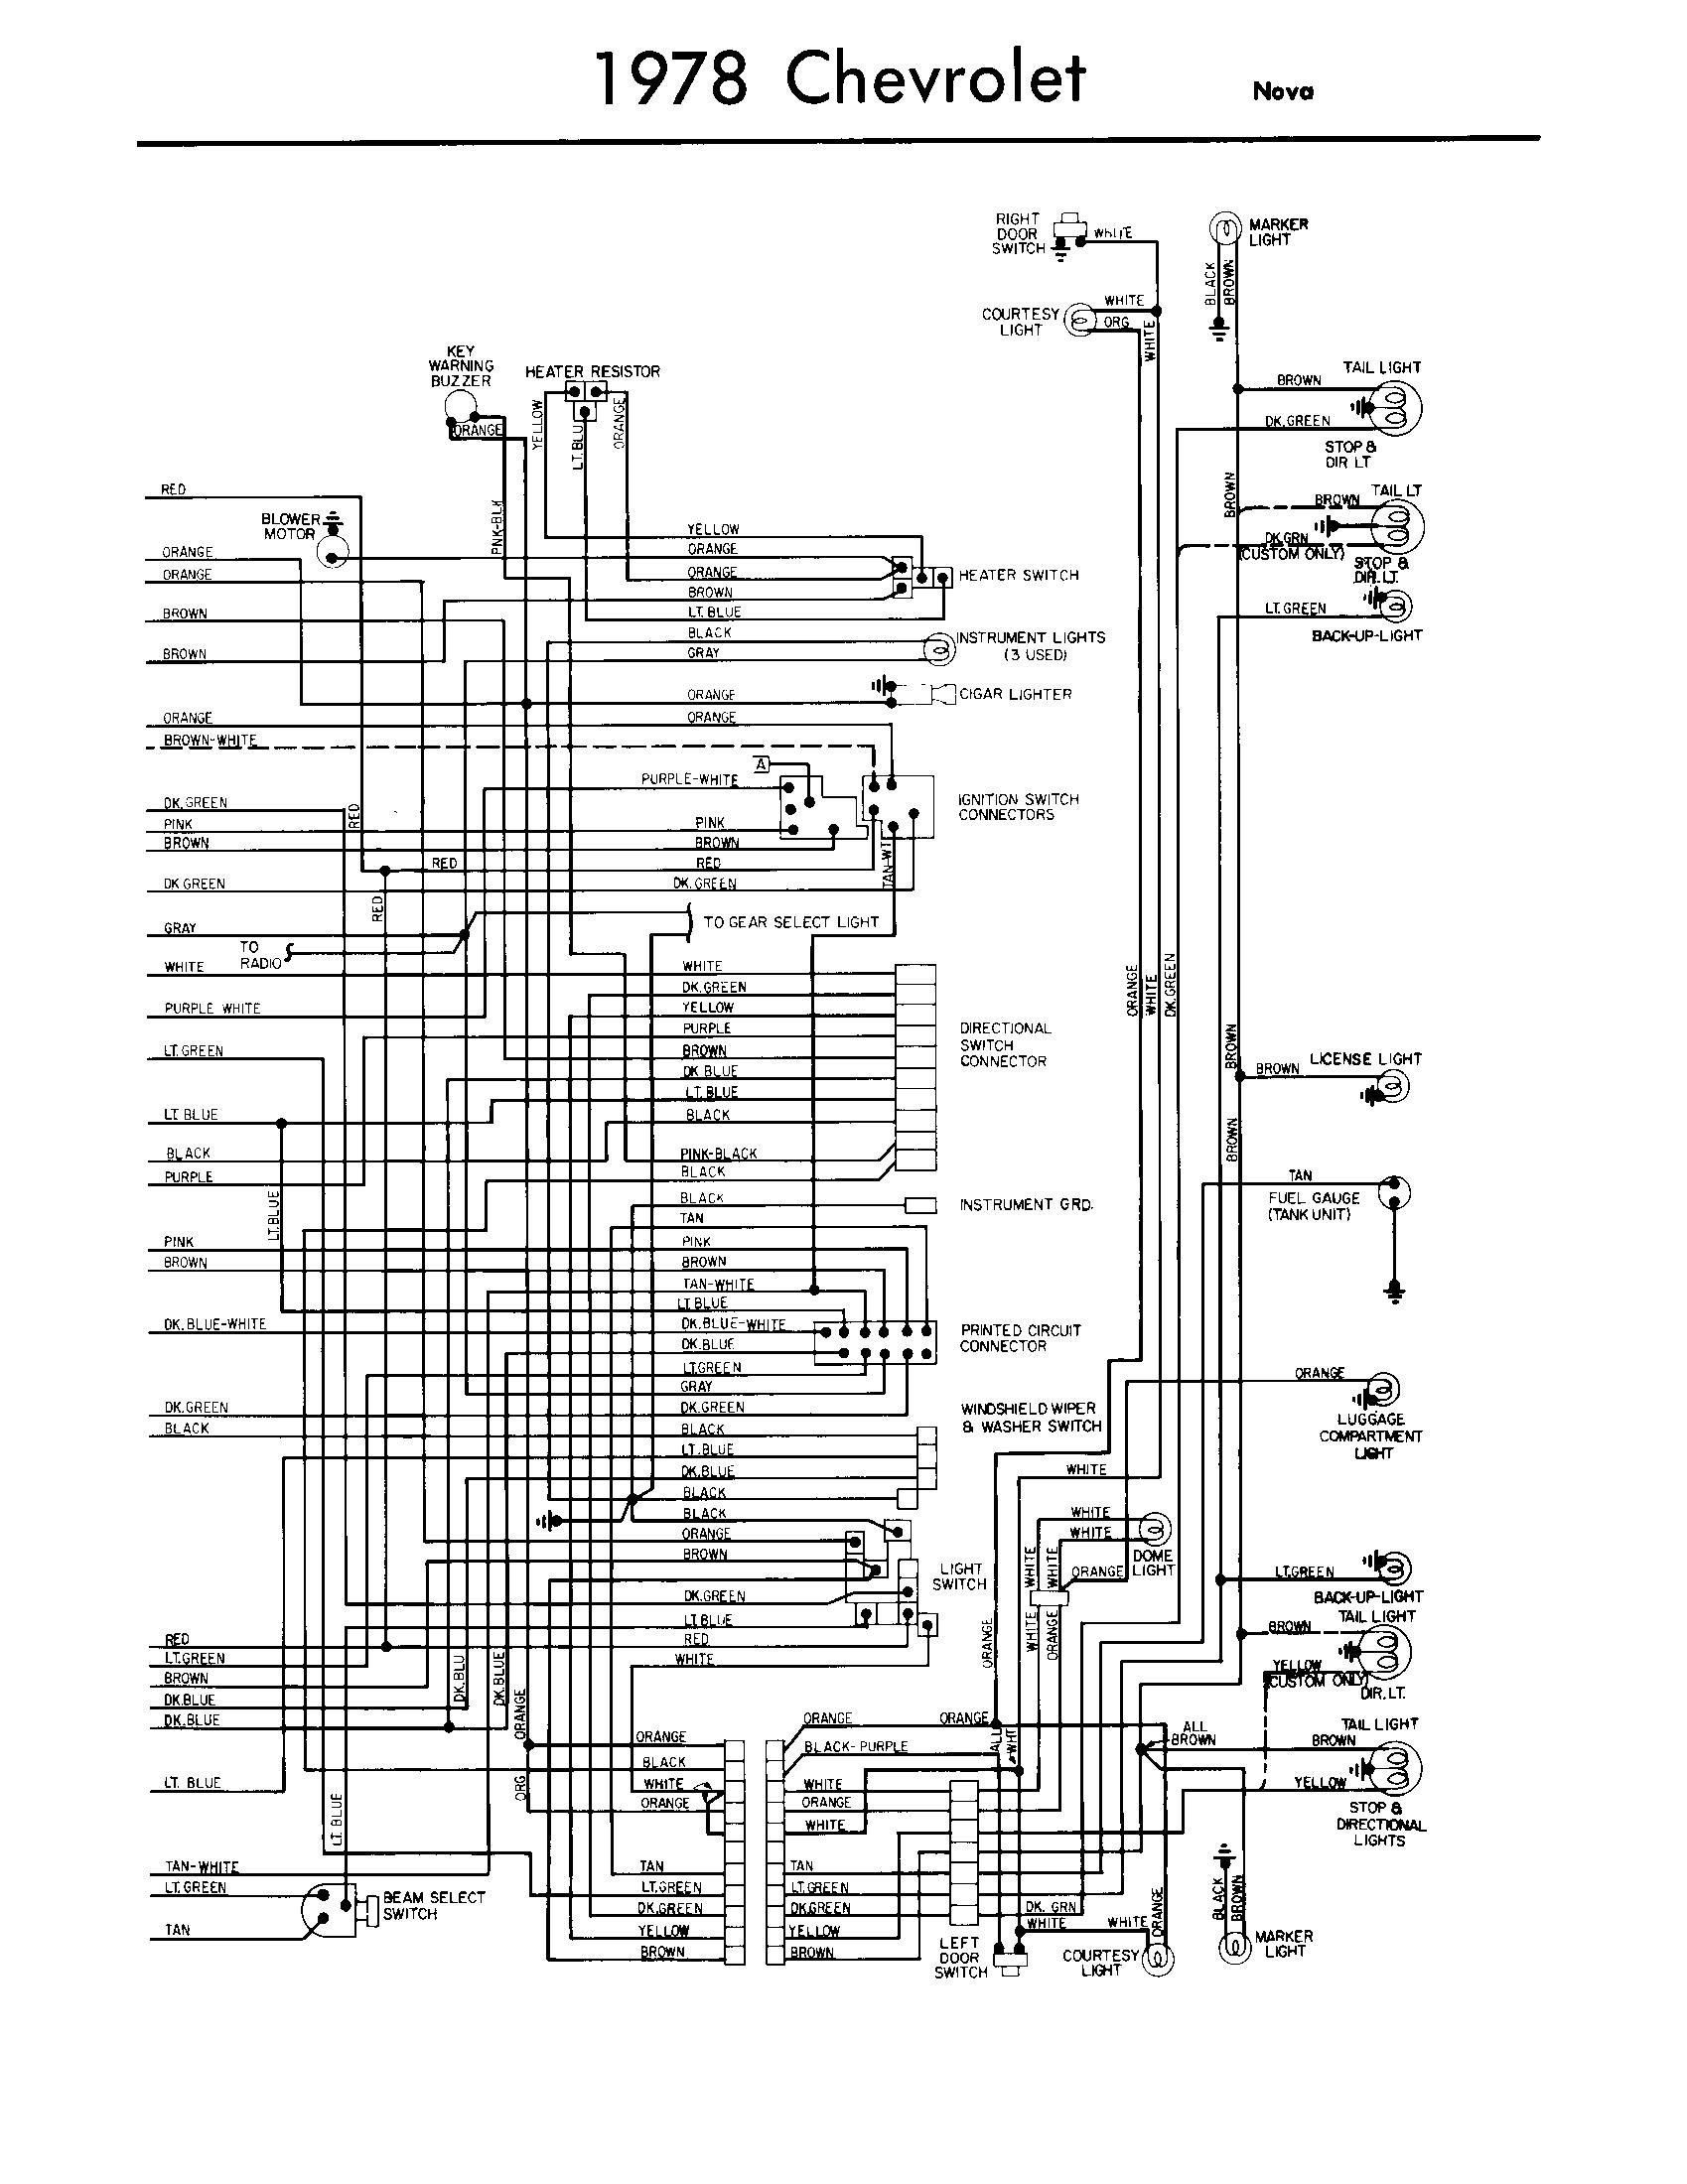 1979 chevy corvette wiring schematic php free download mesmerizing 1979 chevy nova wiring diagram [ 1699 x 2200 Pixel ]